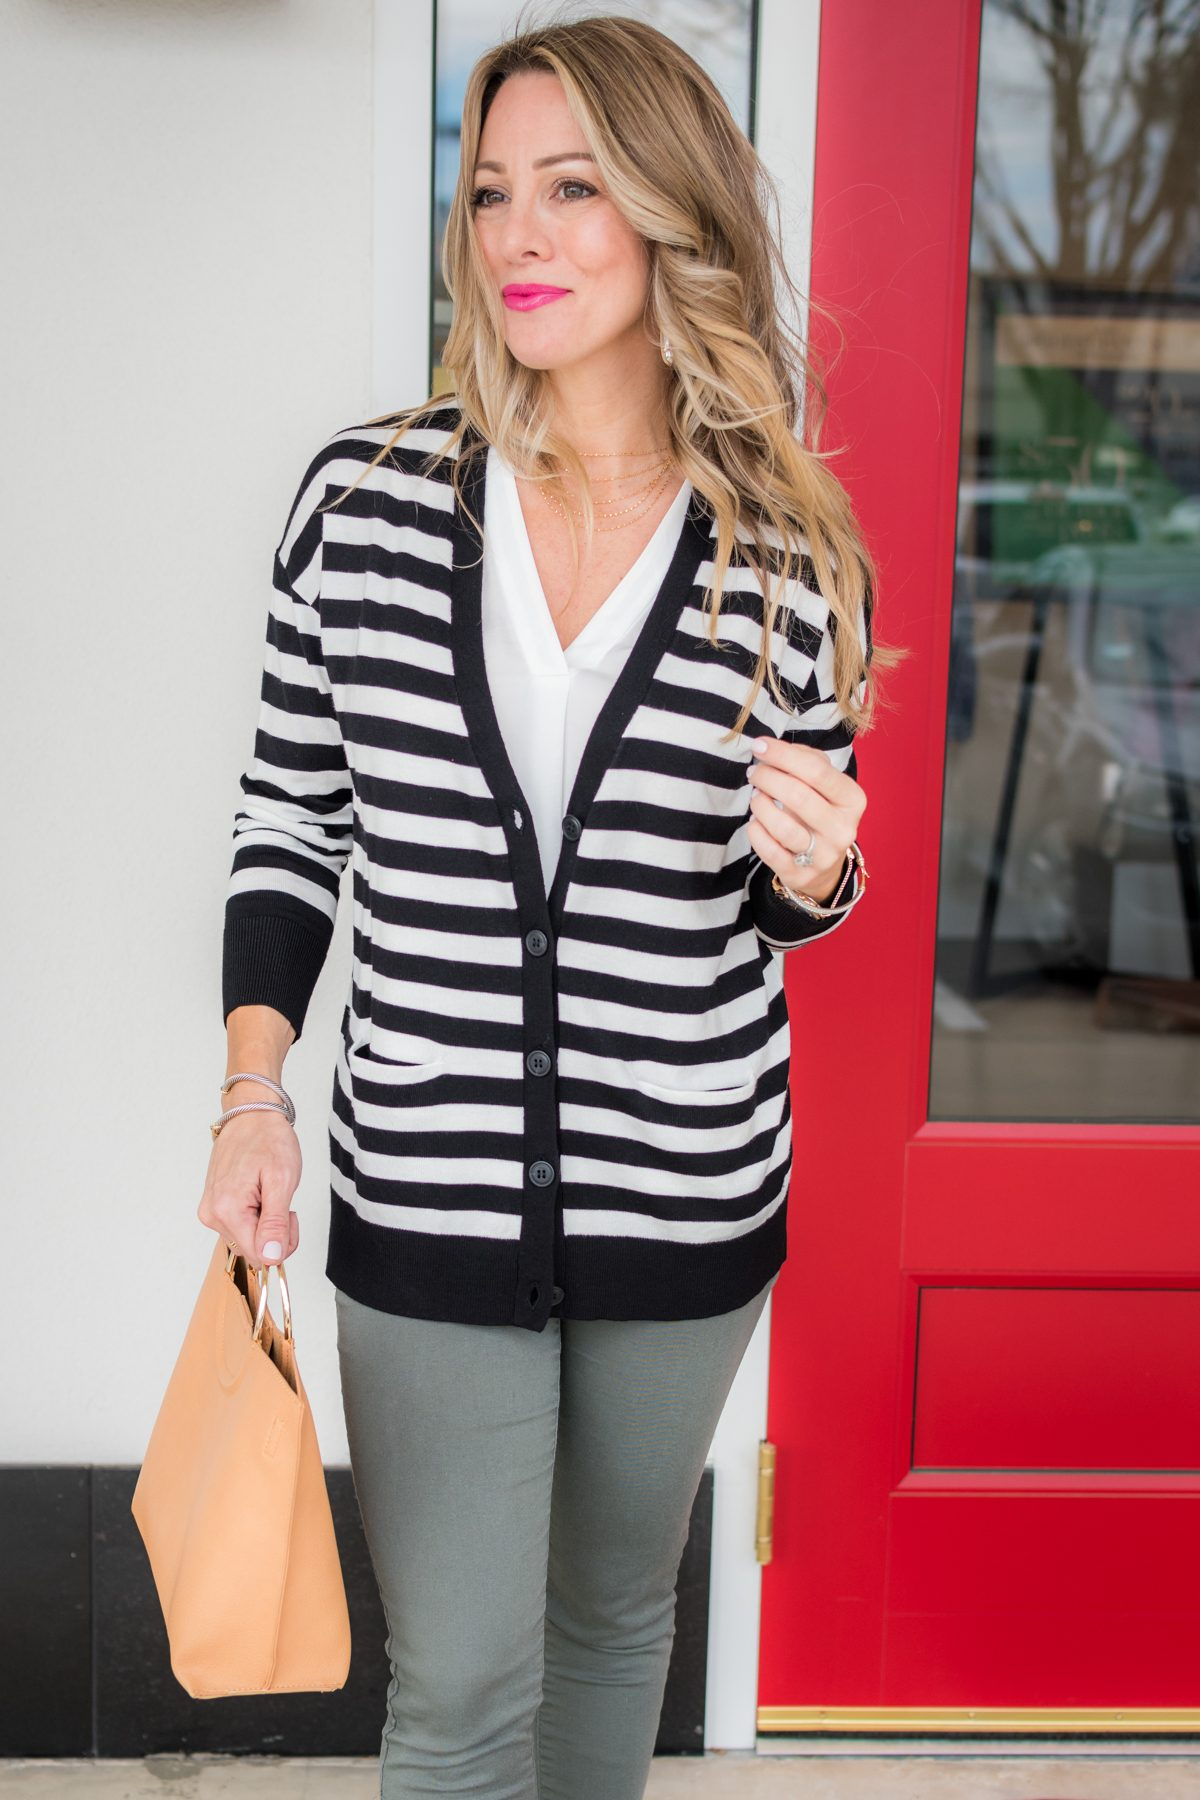 Skimmer Jeans and striped cardigan-1-6